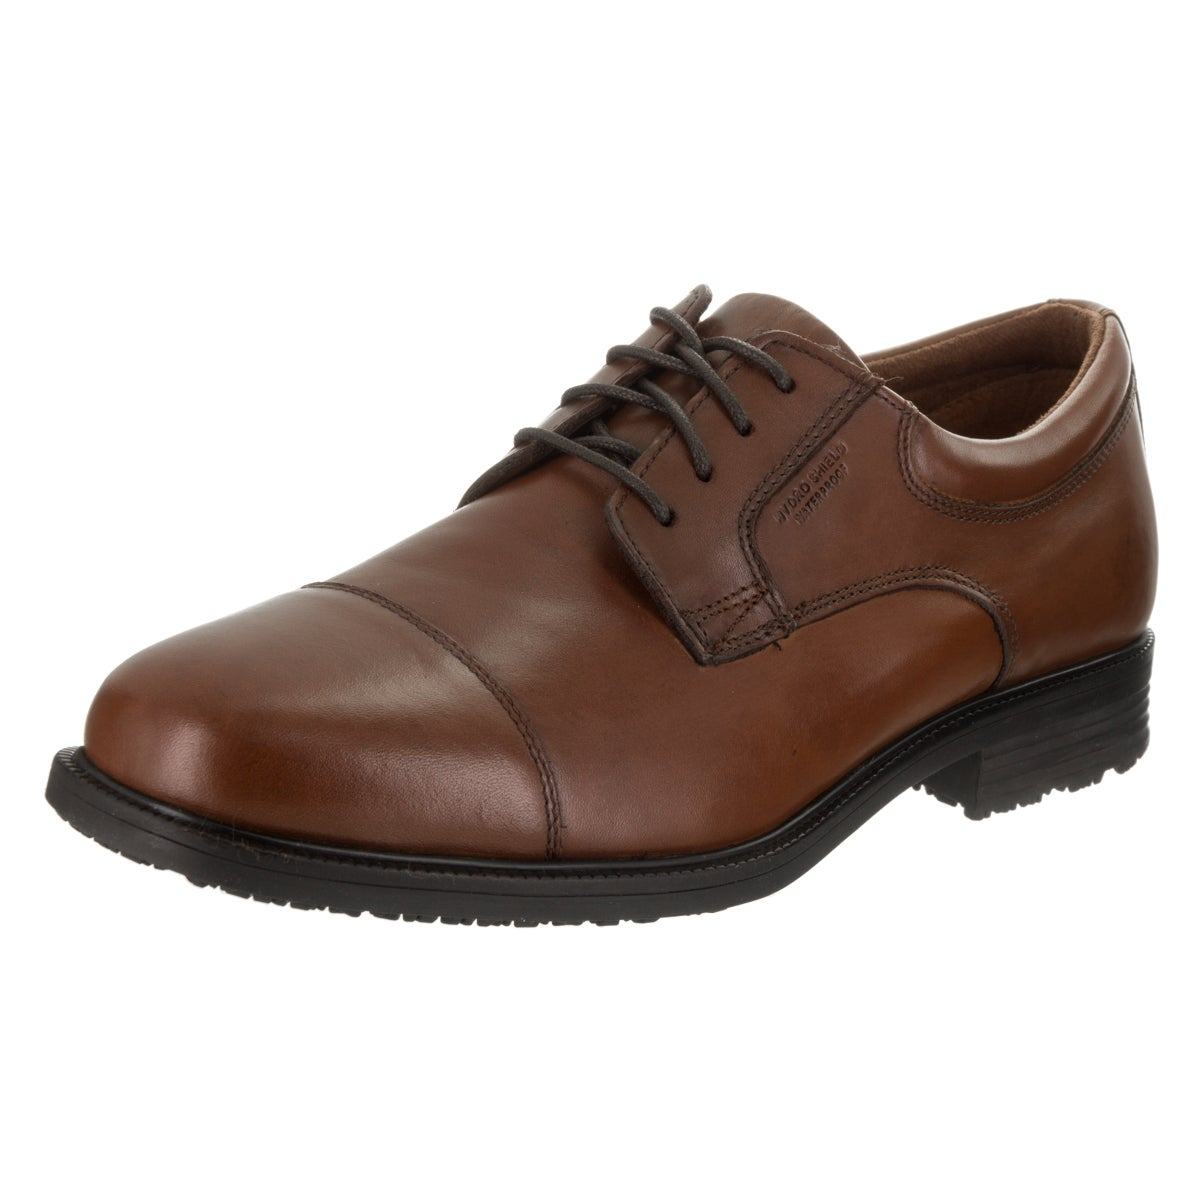 1daec82744dd44 Shop Men s Rockport Essential Details Waterproof Cap Toe Tan Antique  Leather - Free Shipping Today - Overstock - 12309932